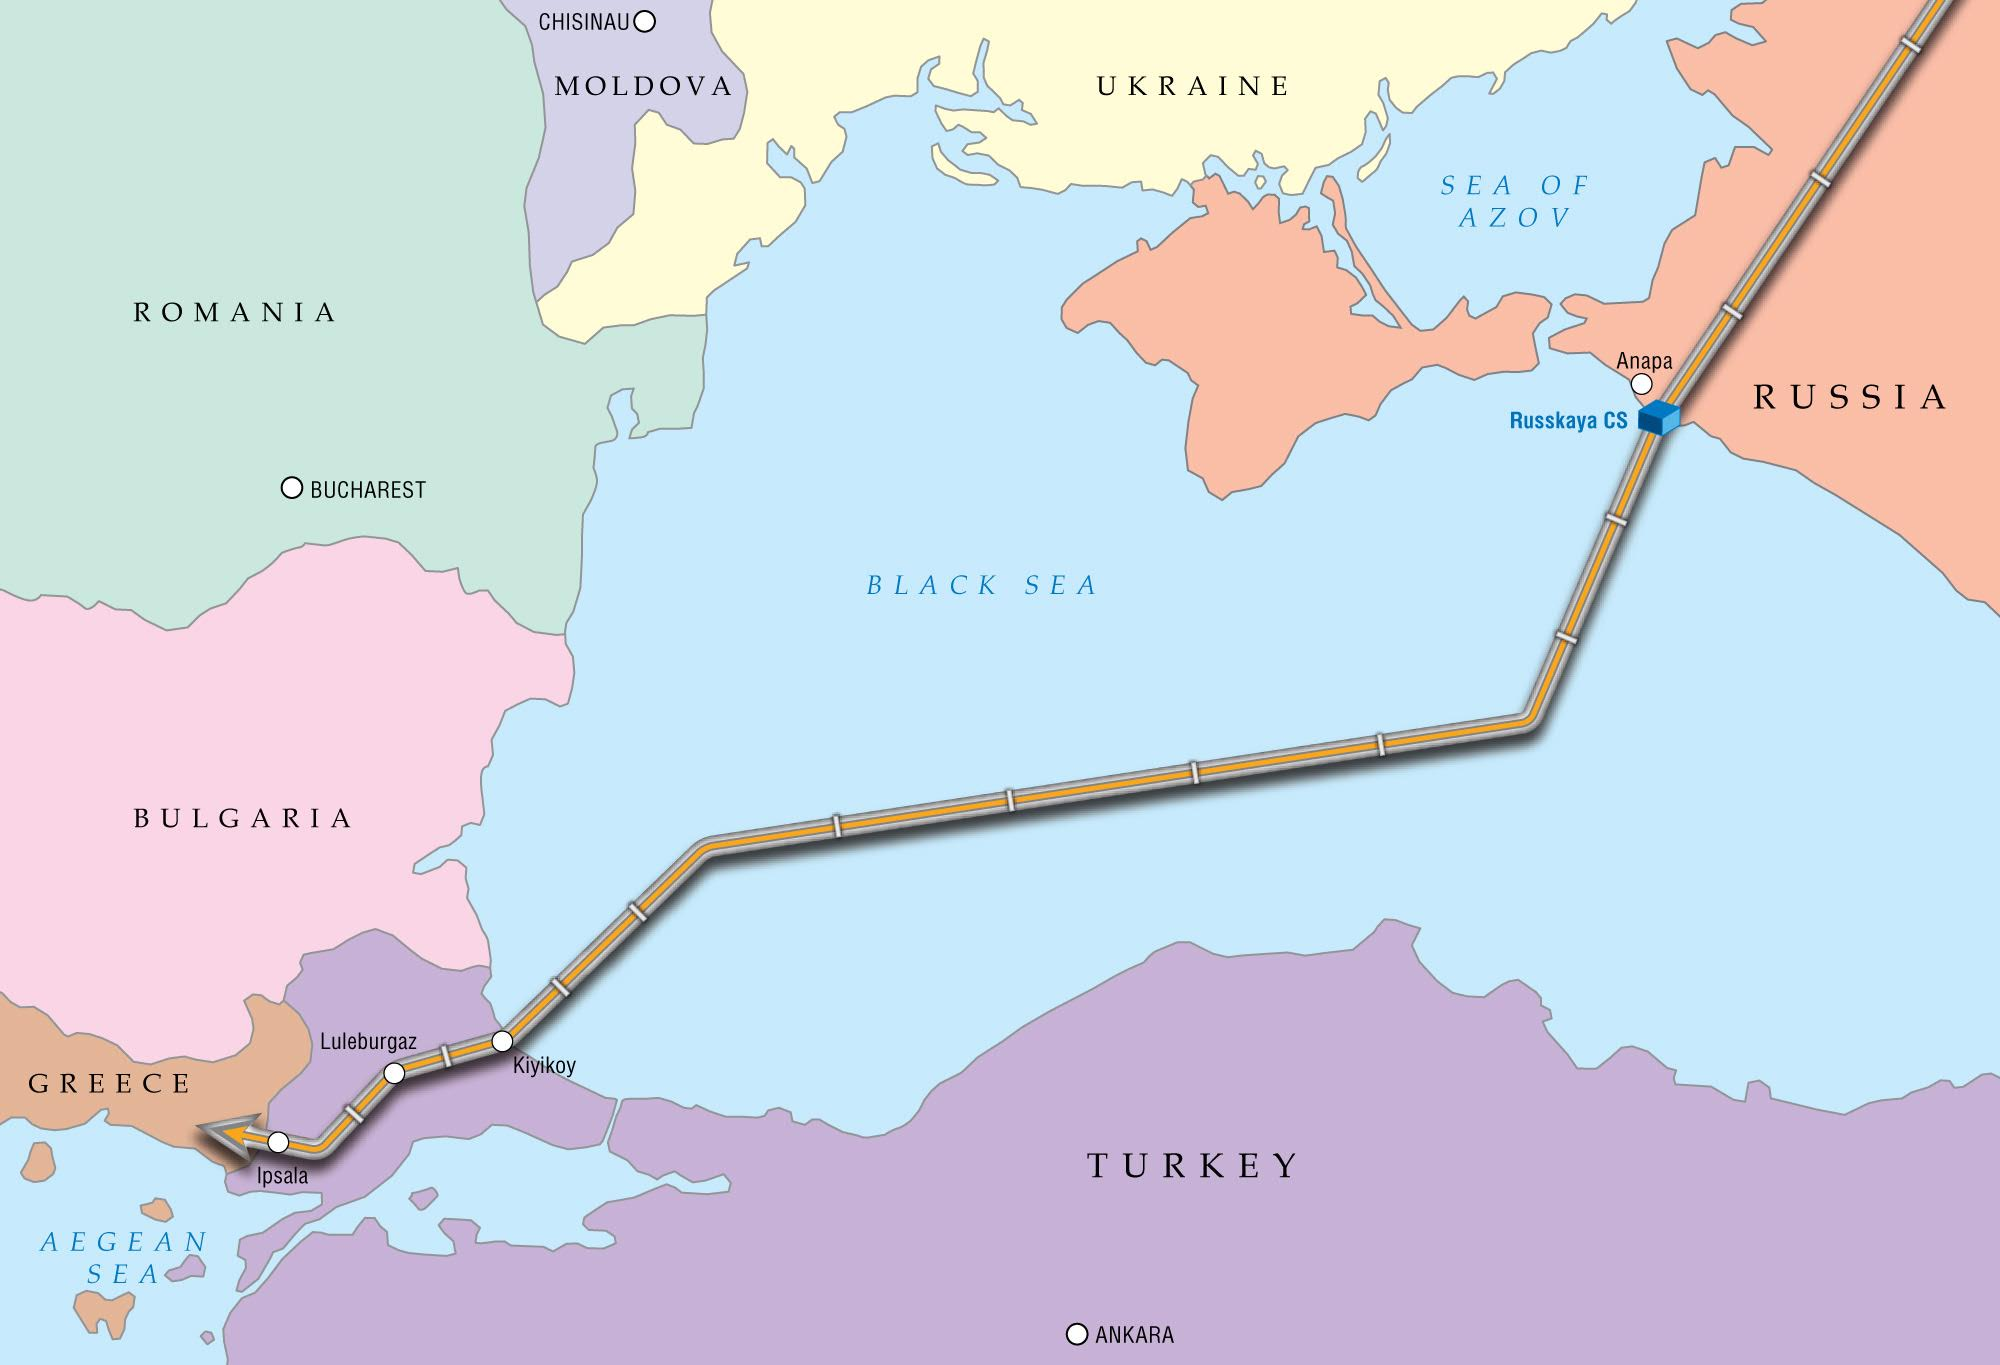 South Stream's 'half brother' to be revived in a year from now